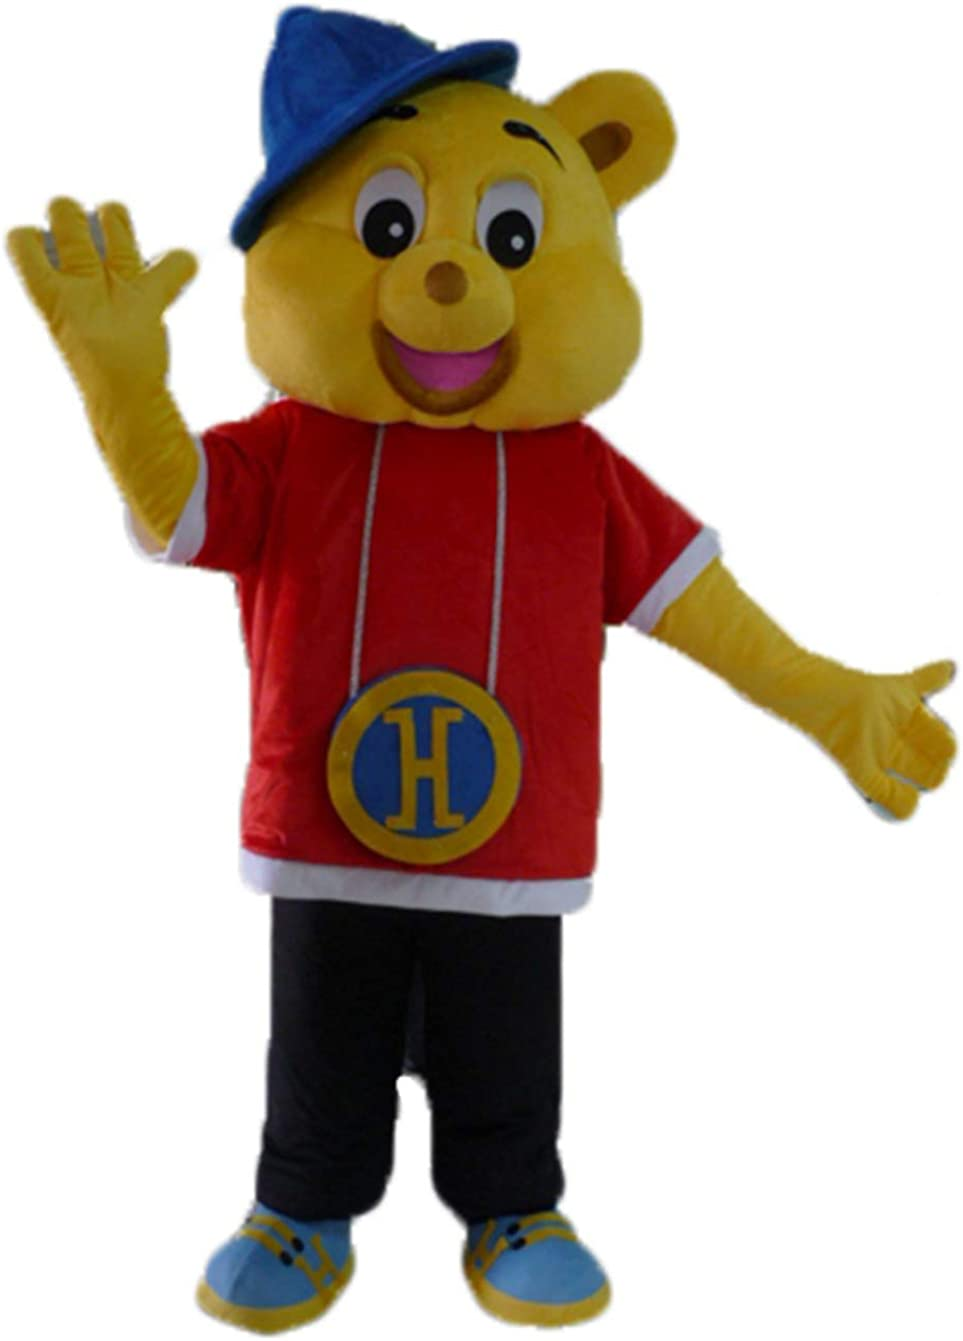 Hip Hop Harry Bear Mascot Costume Mascots Max 55% OFF Tulsa Mall Character for Party fo